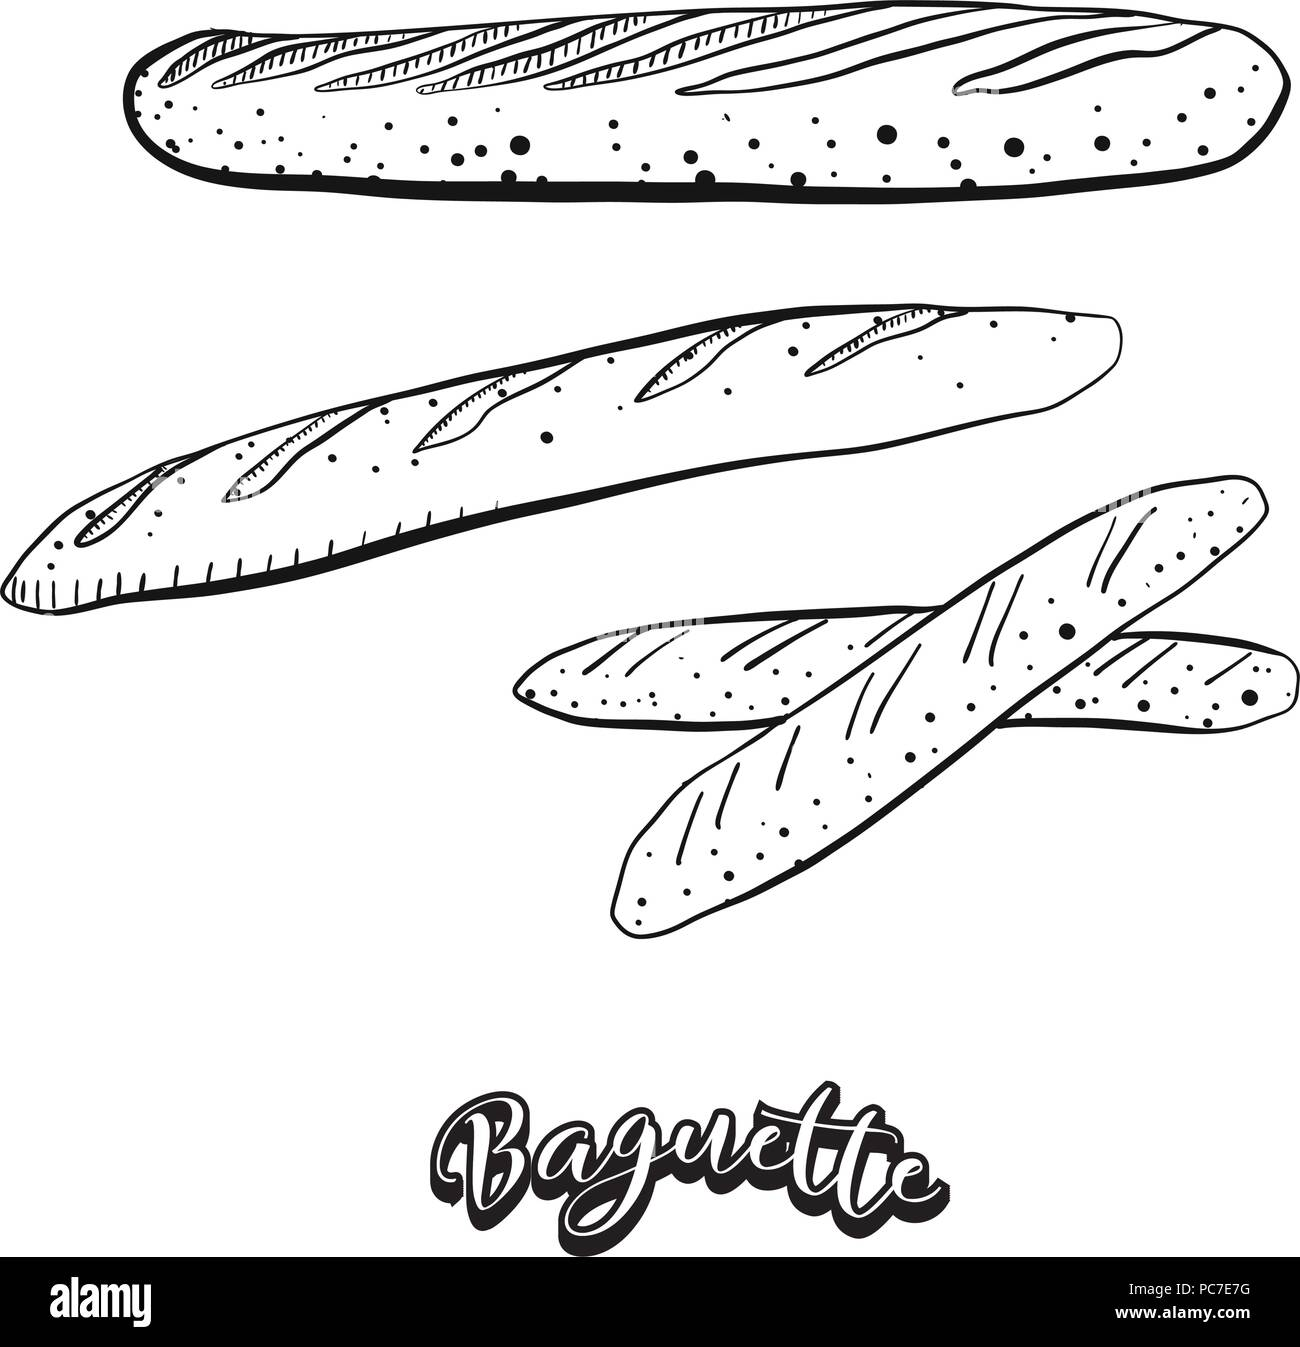 Hand Drawn Sketch Of Baguette Food Vector Drawing Yeast Bread Usually Known In France Illustration Series